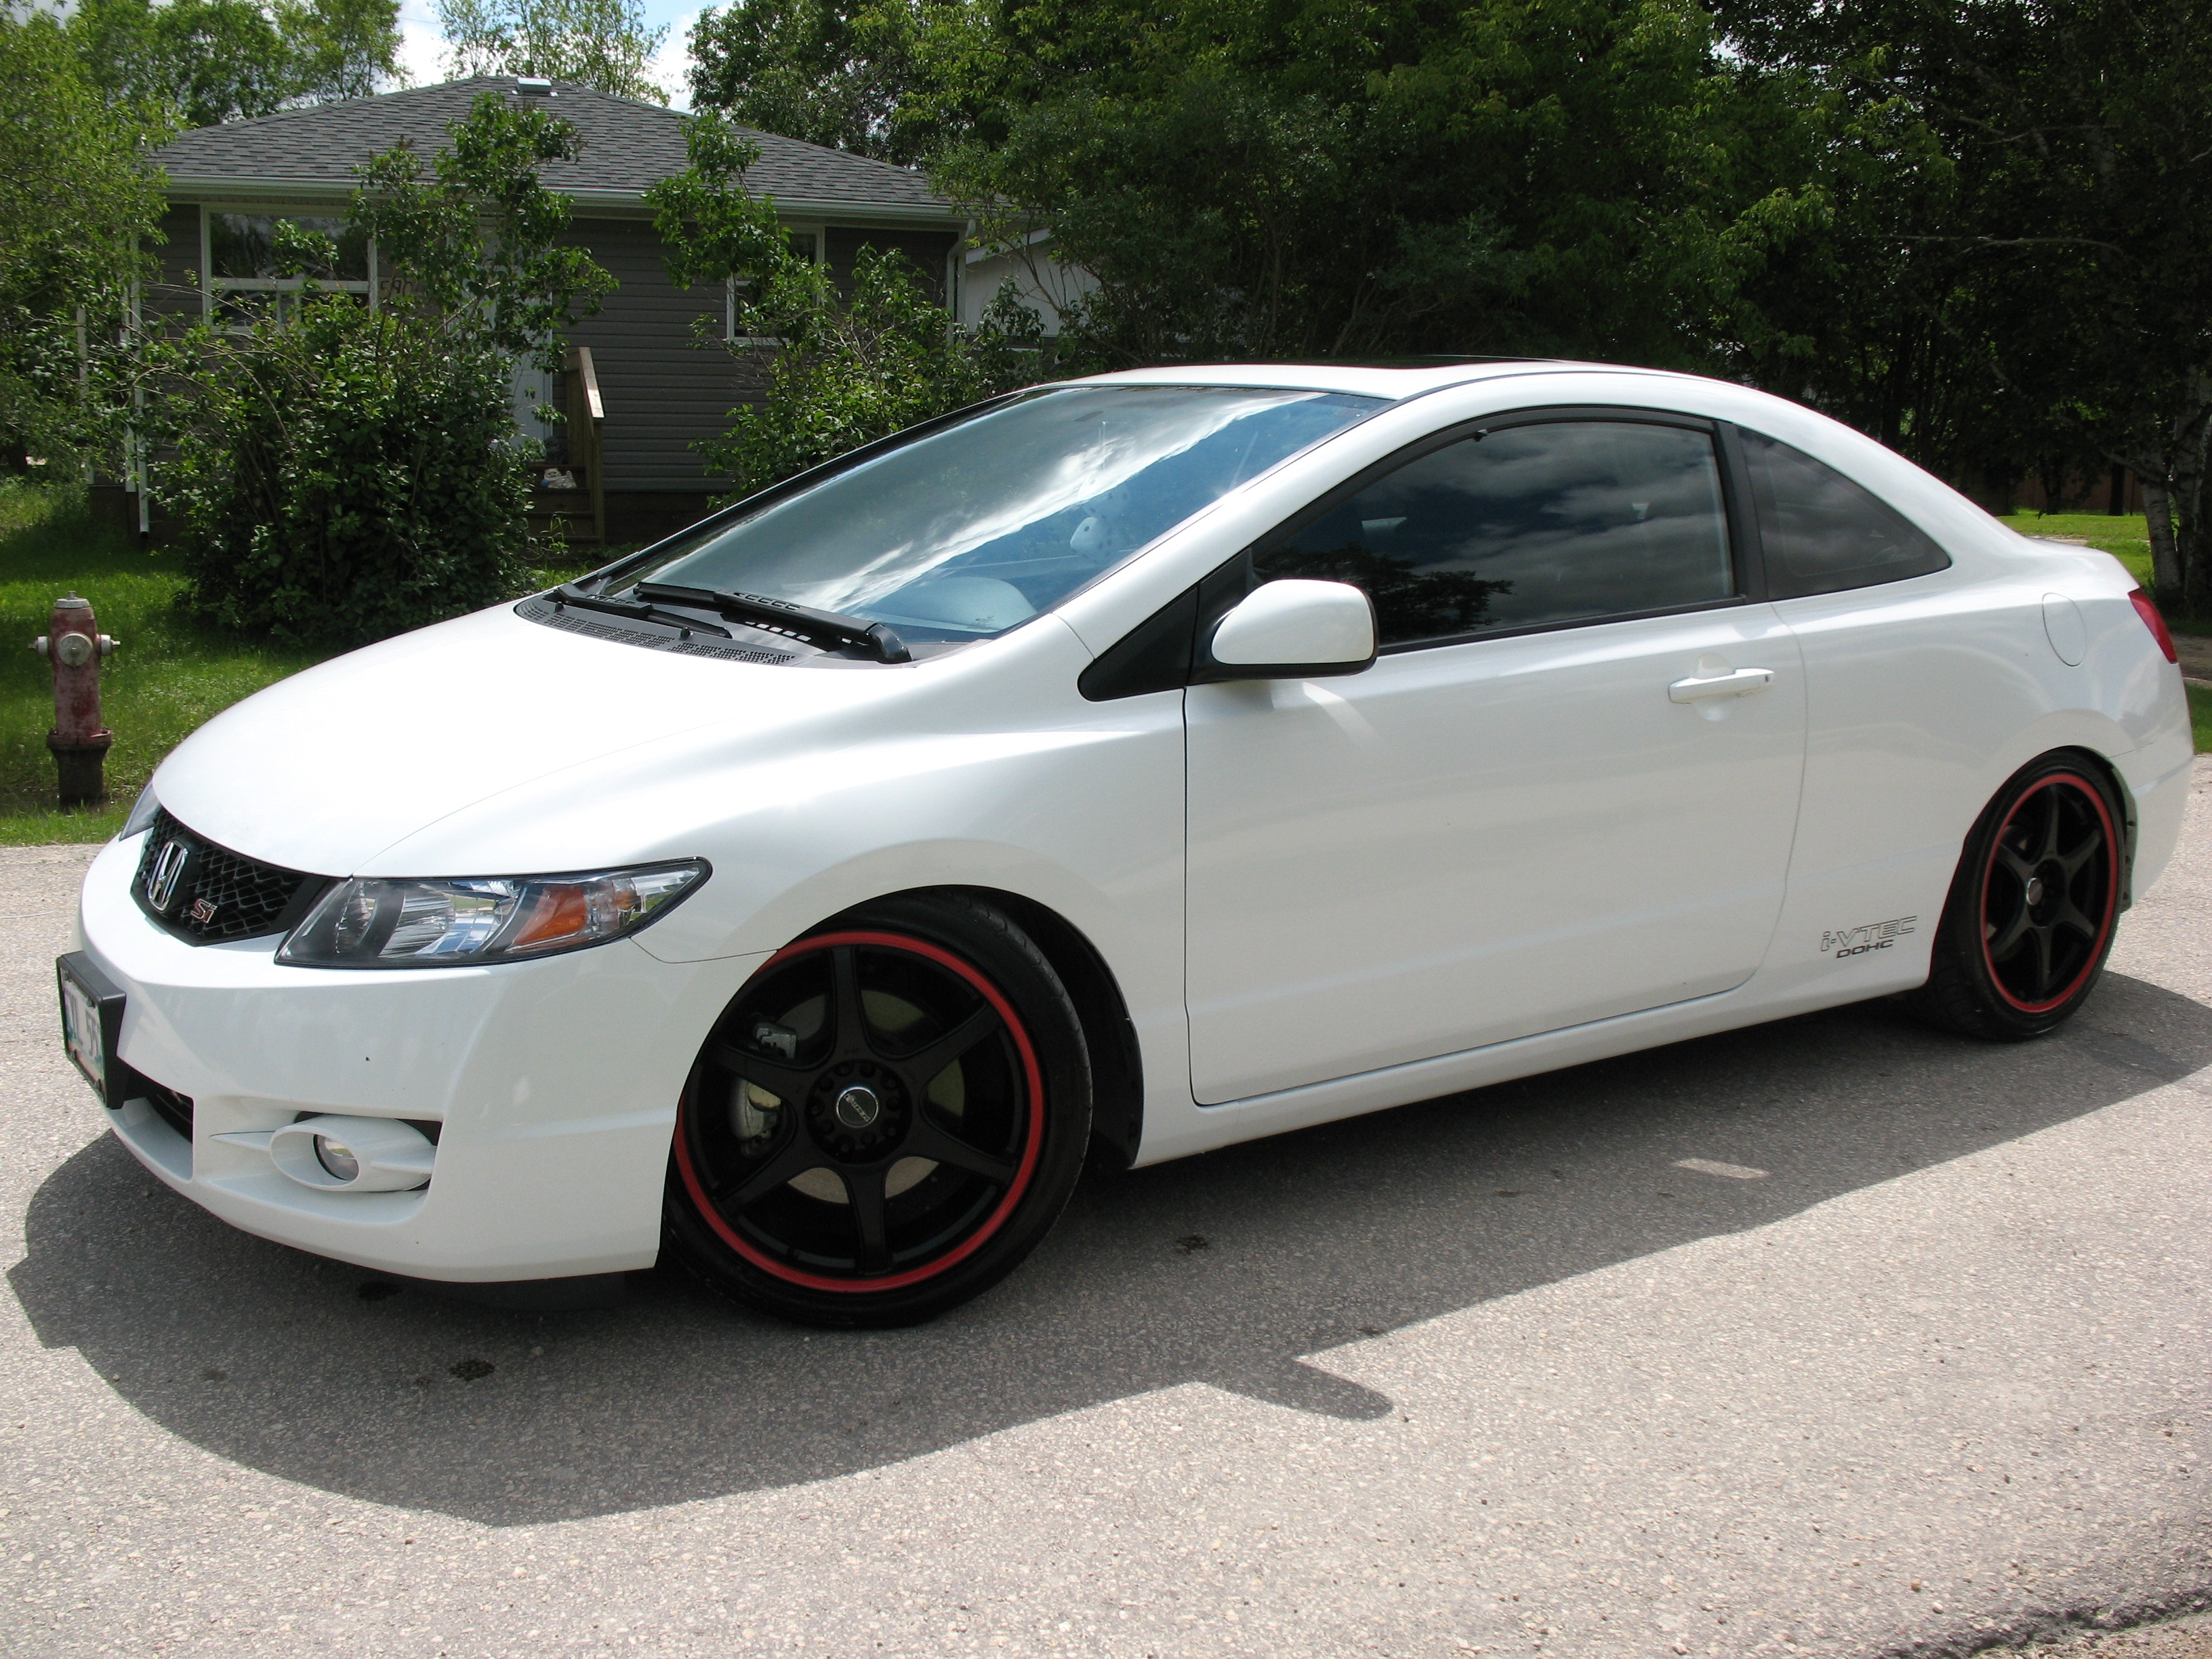 irnie85 39 s 2009 honda civic si coupe 2d in winnipeg mb. Black Bedroom Furniture Sets. Home Design Ideas